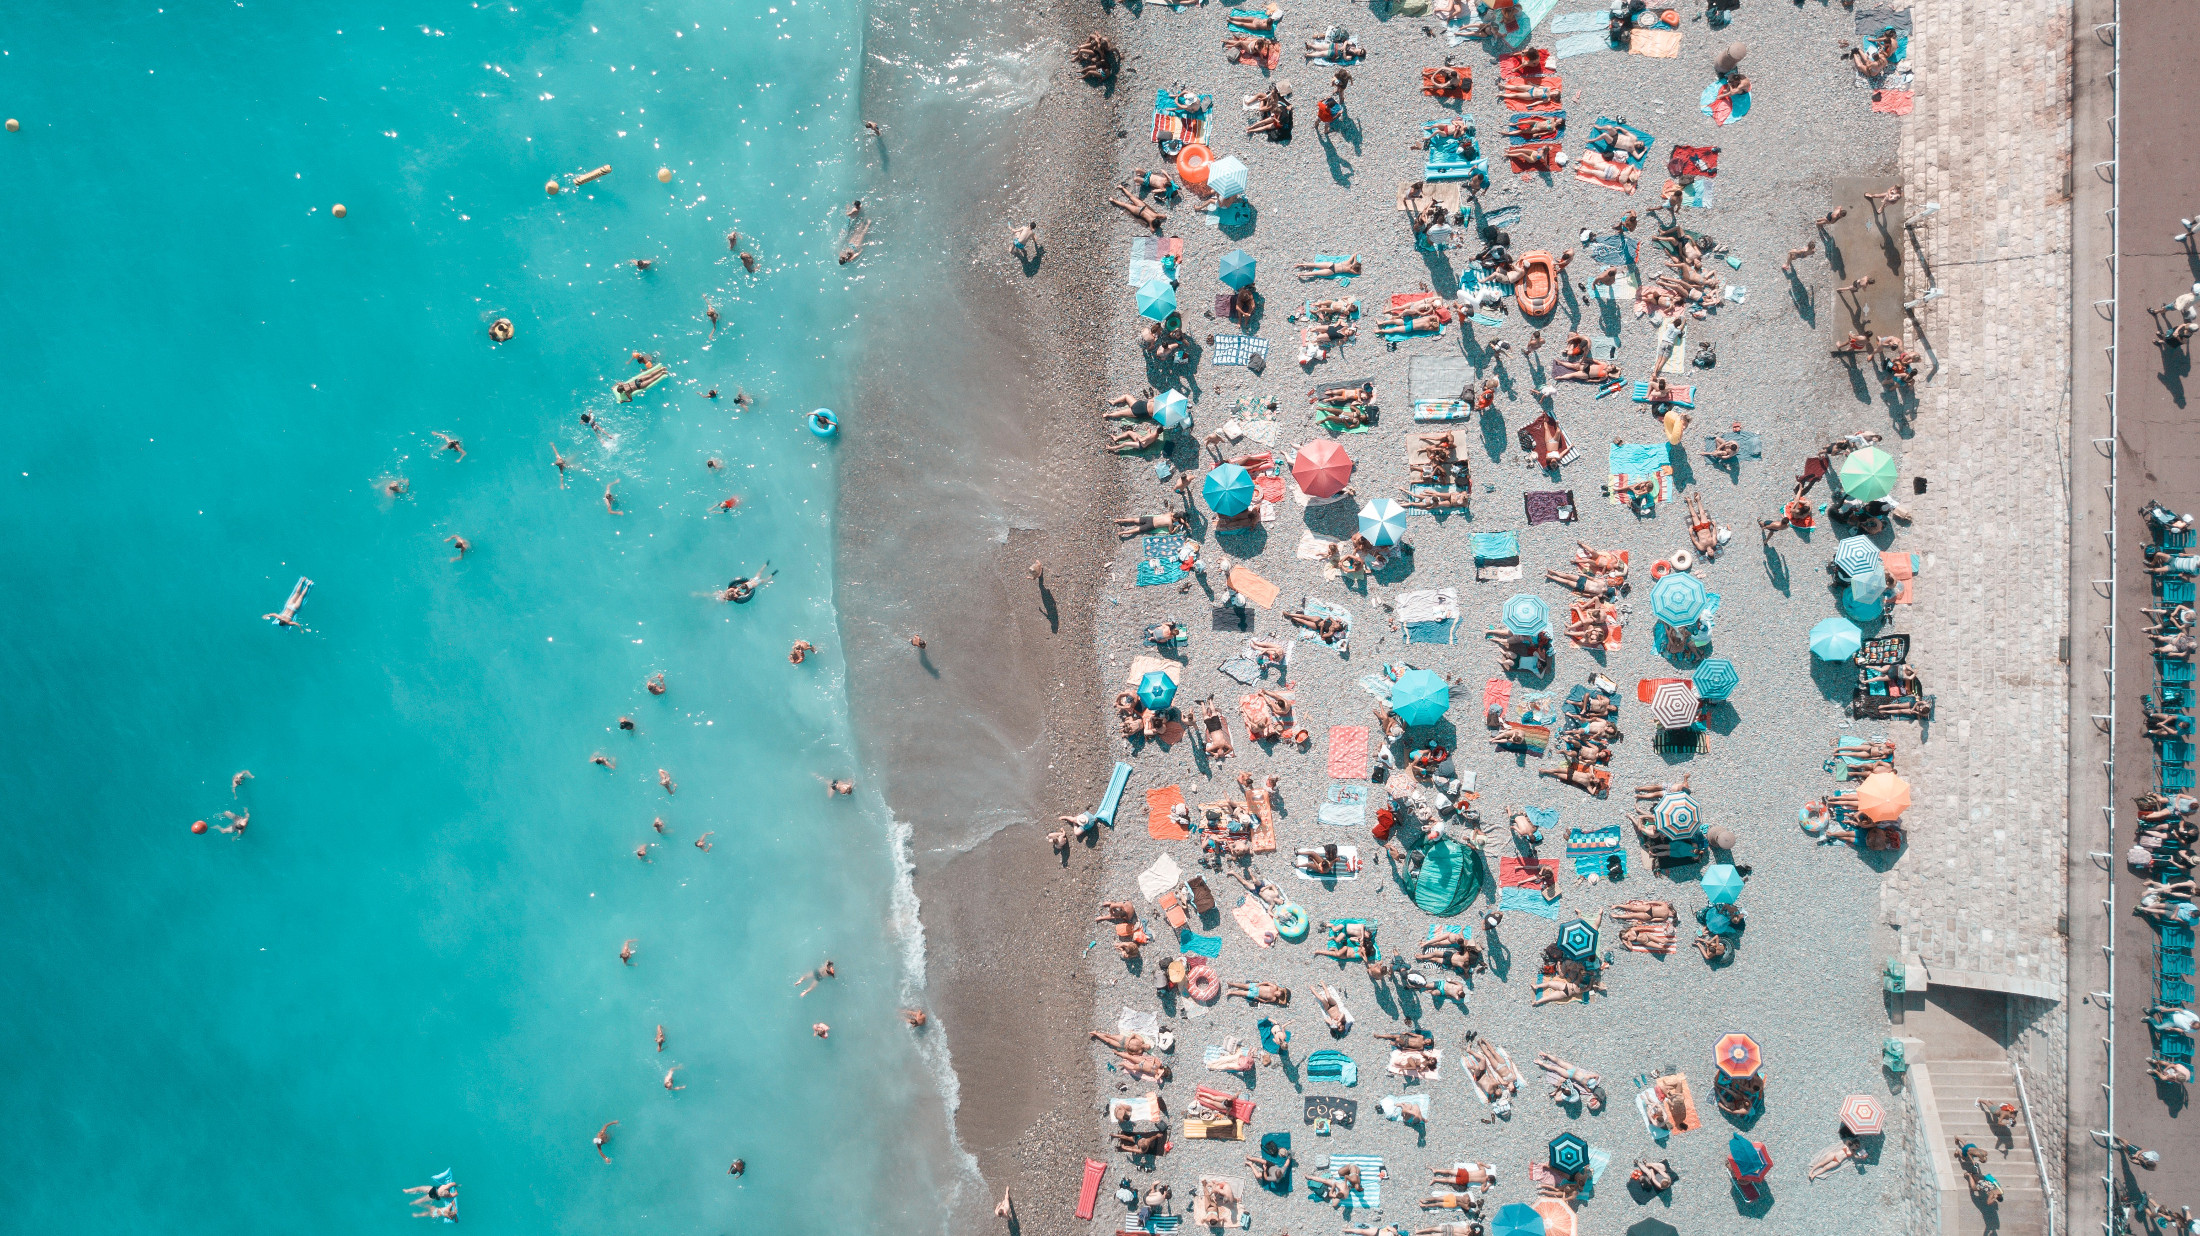 springbreak-alex-d-alessio-1208541-unsplash